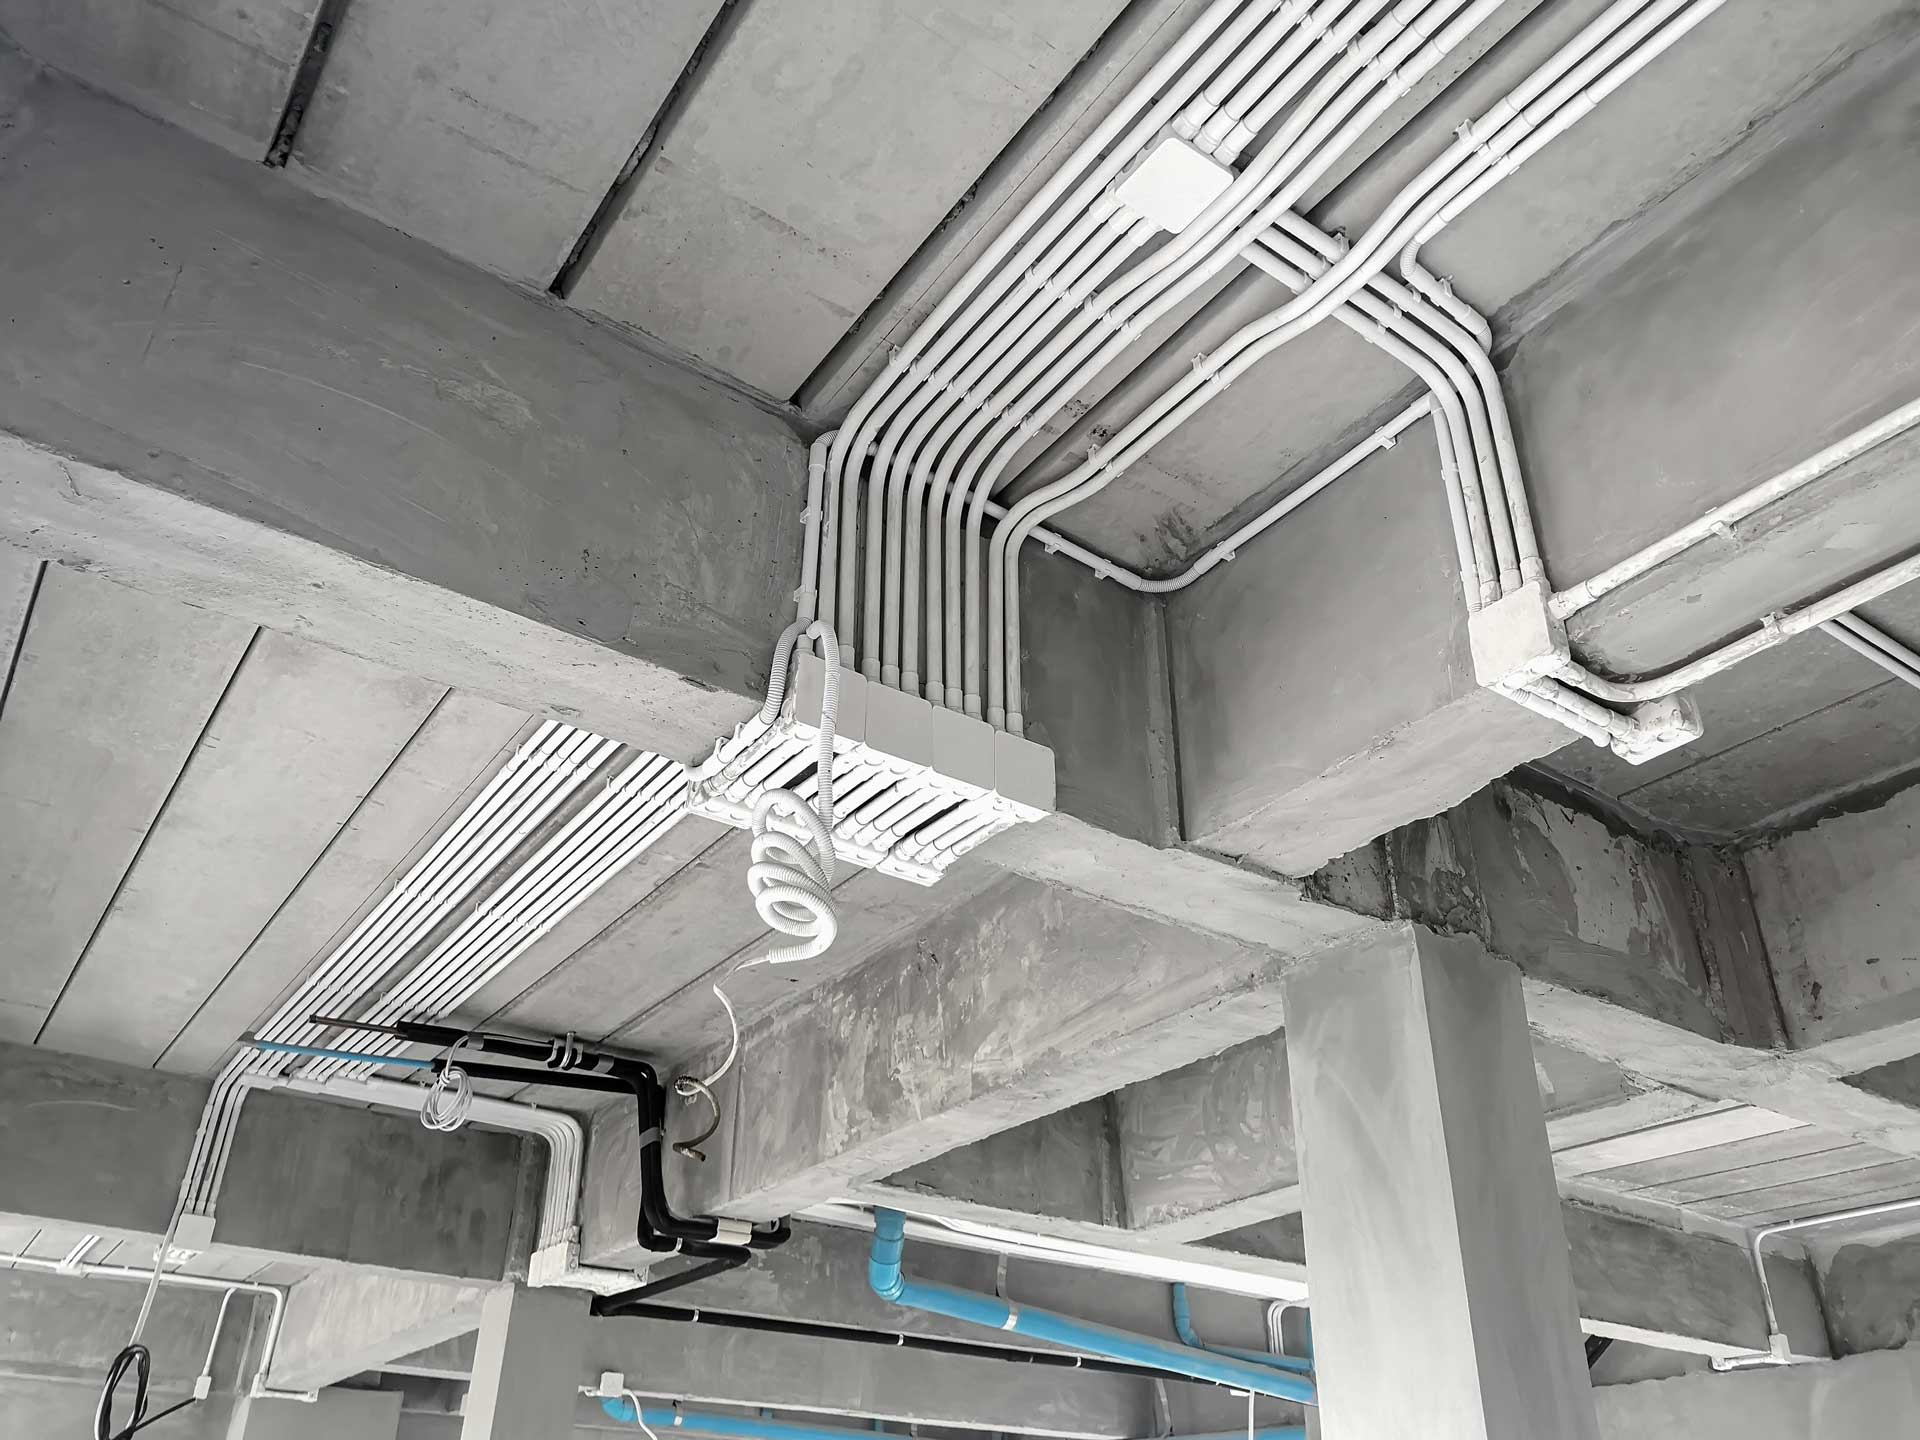 A huge run of electrical cables on a ceiling of an industrial building